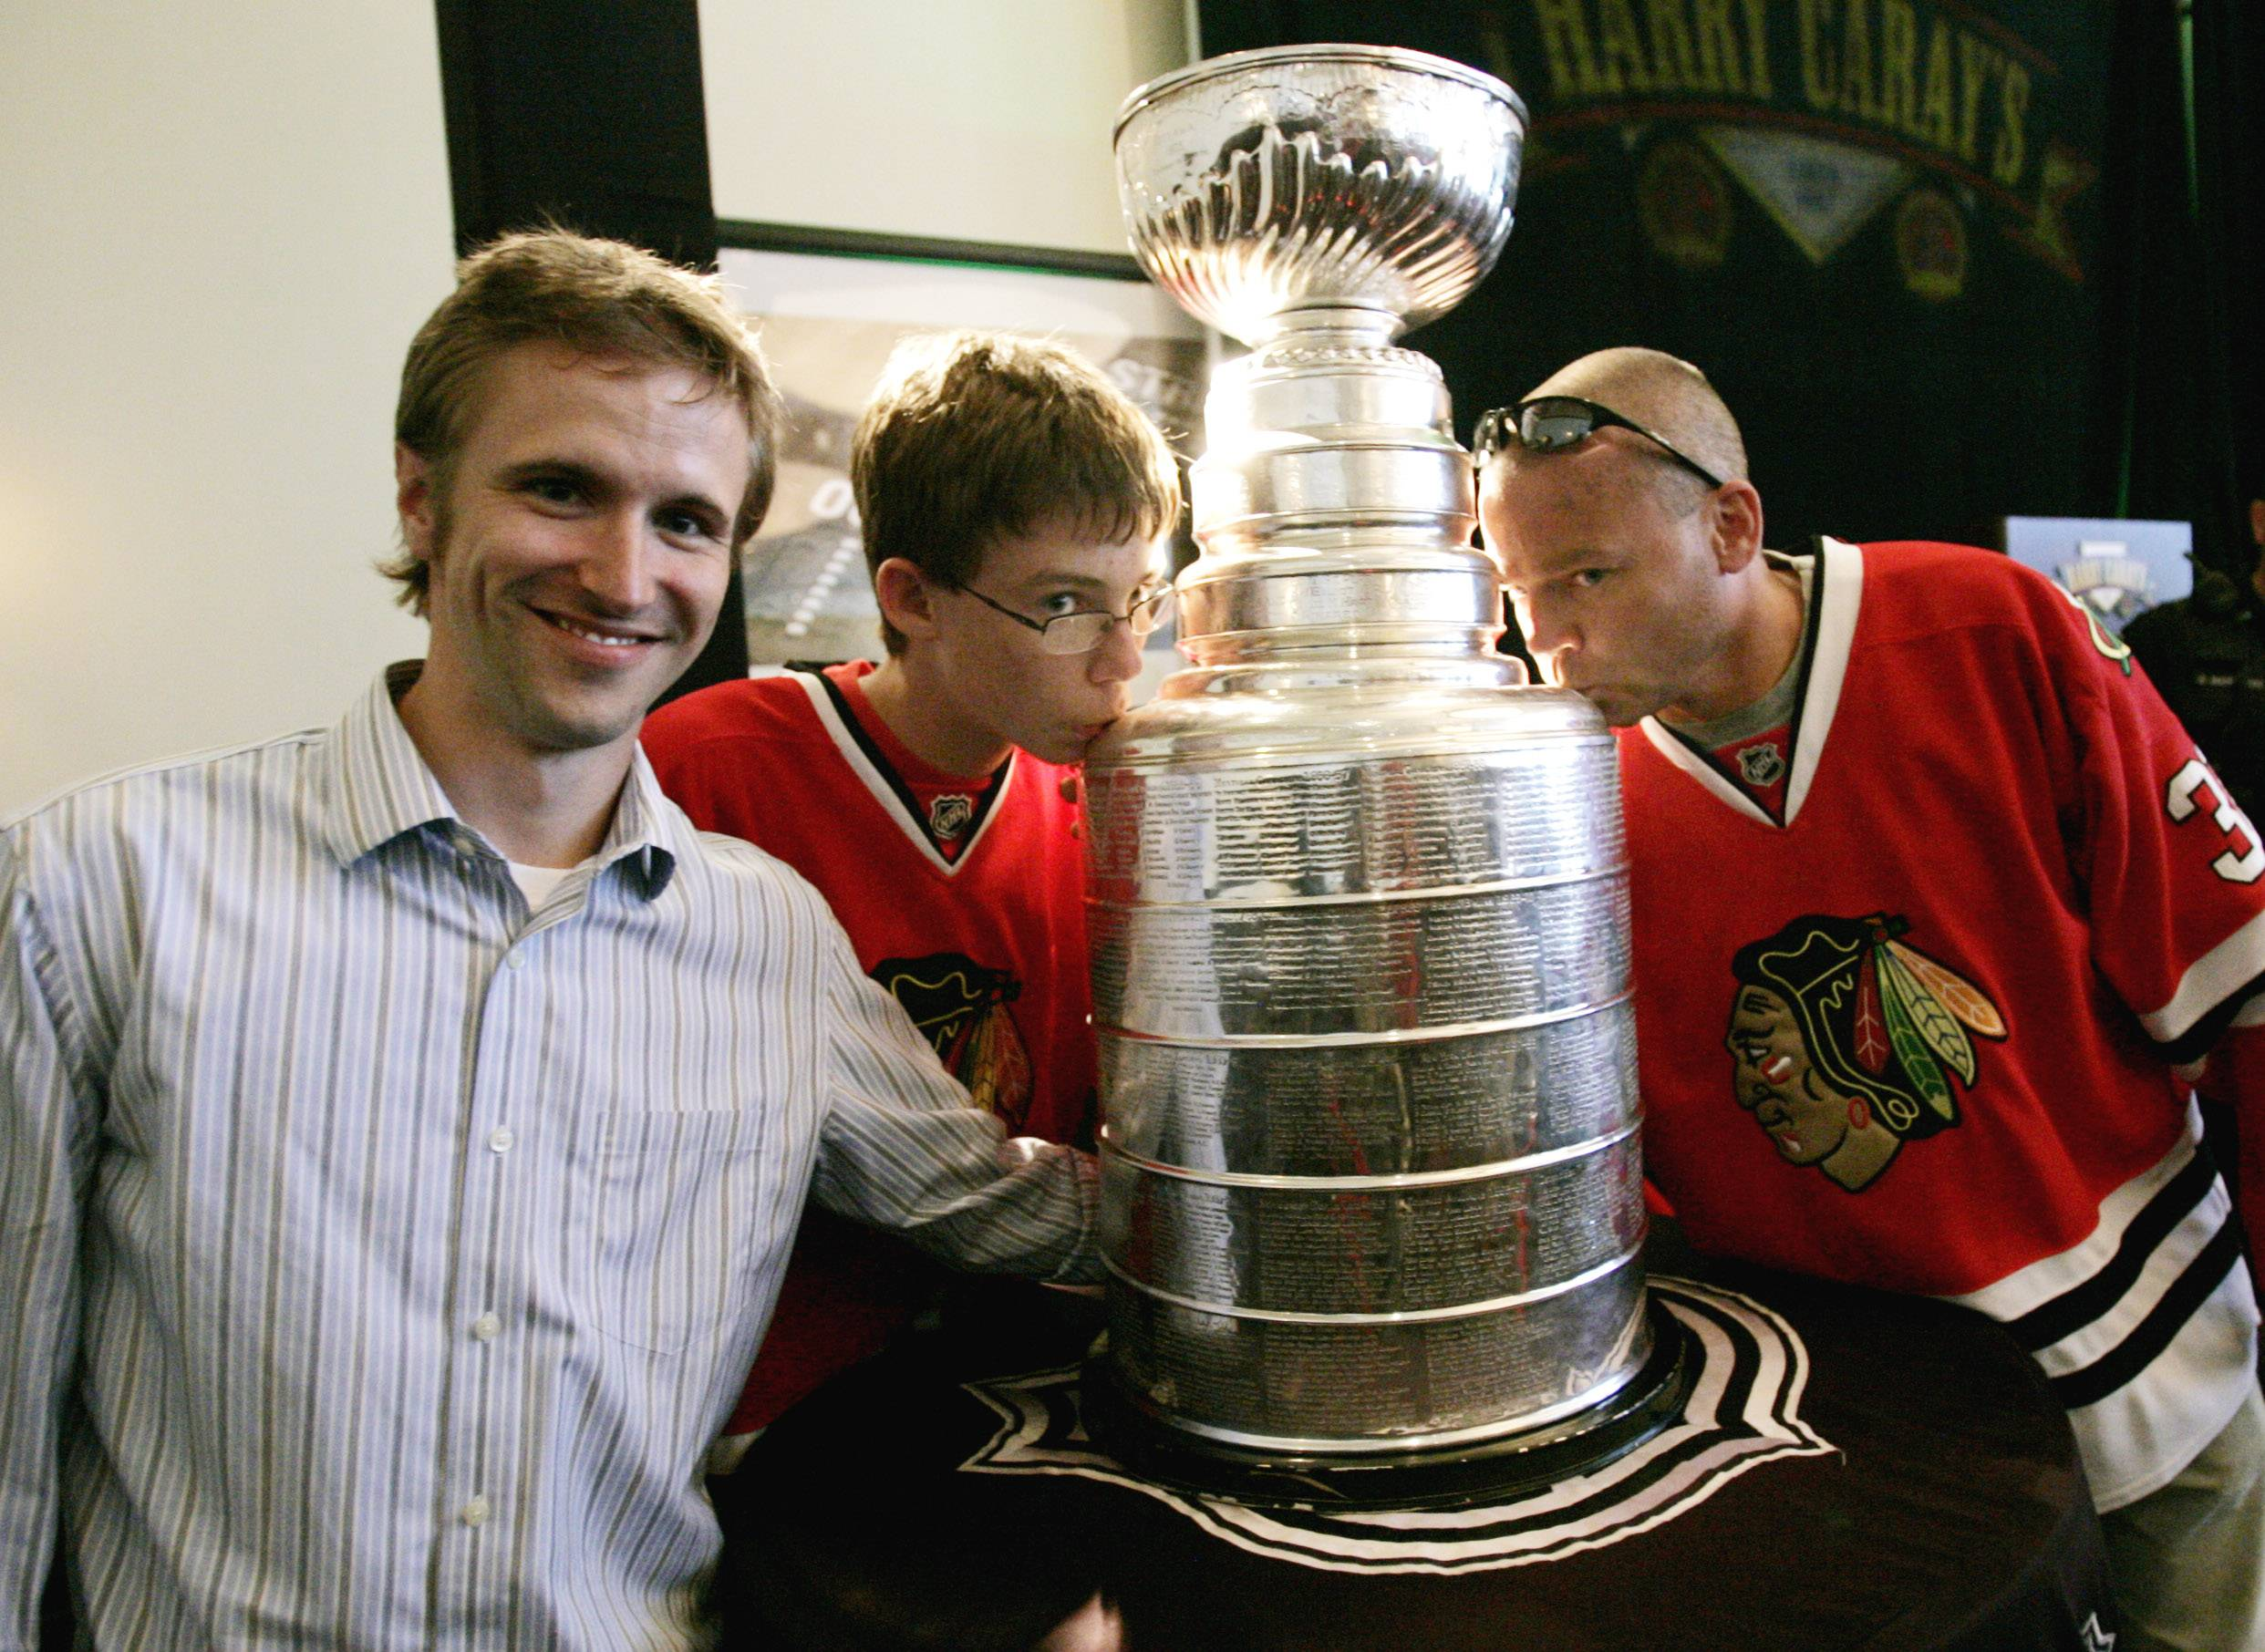 Update: It will take weeks to determine cause of death of Blackhawks staffer